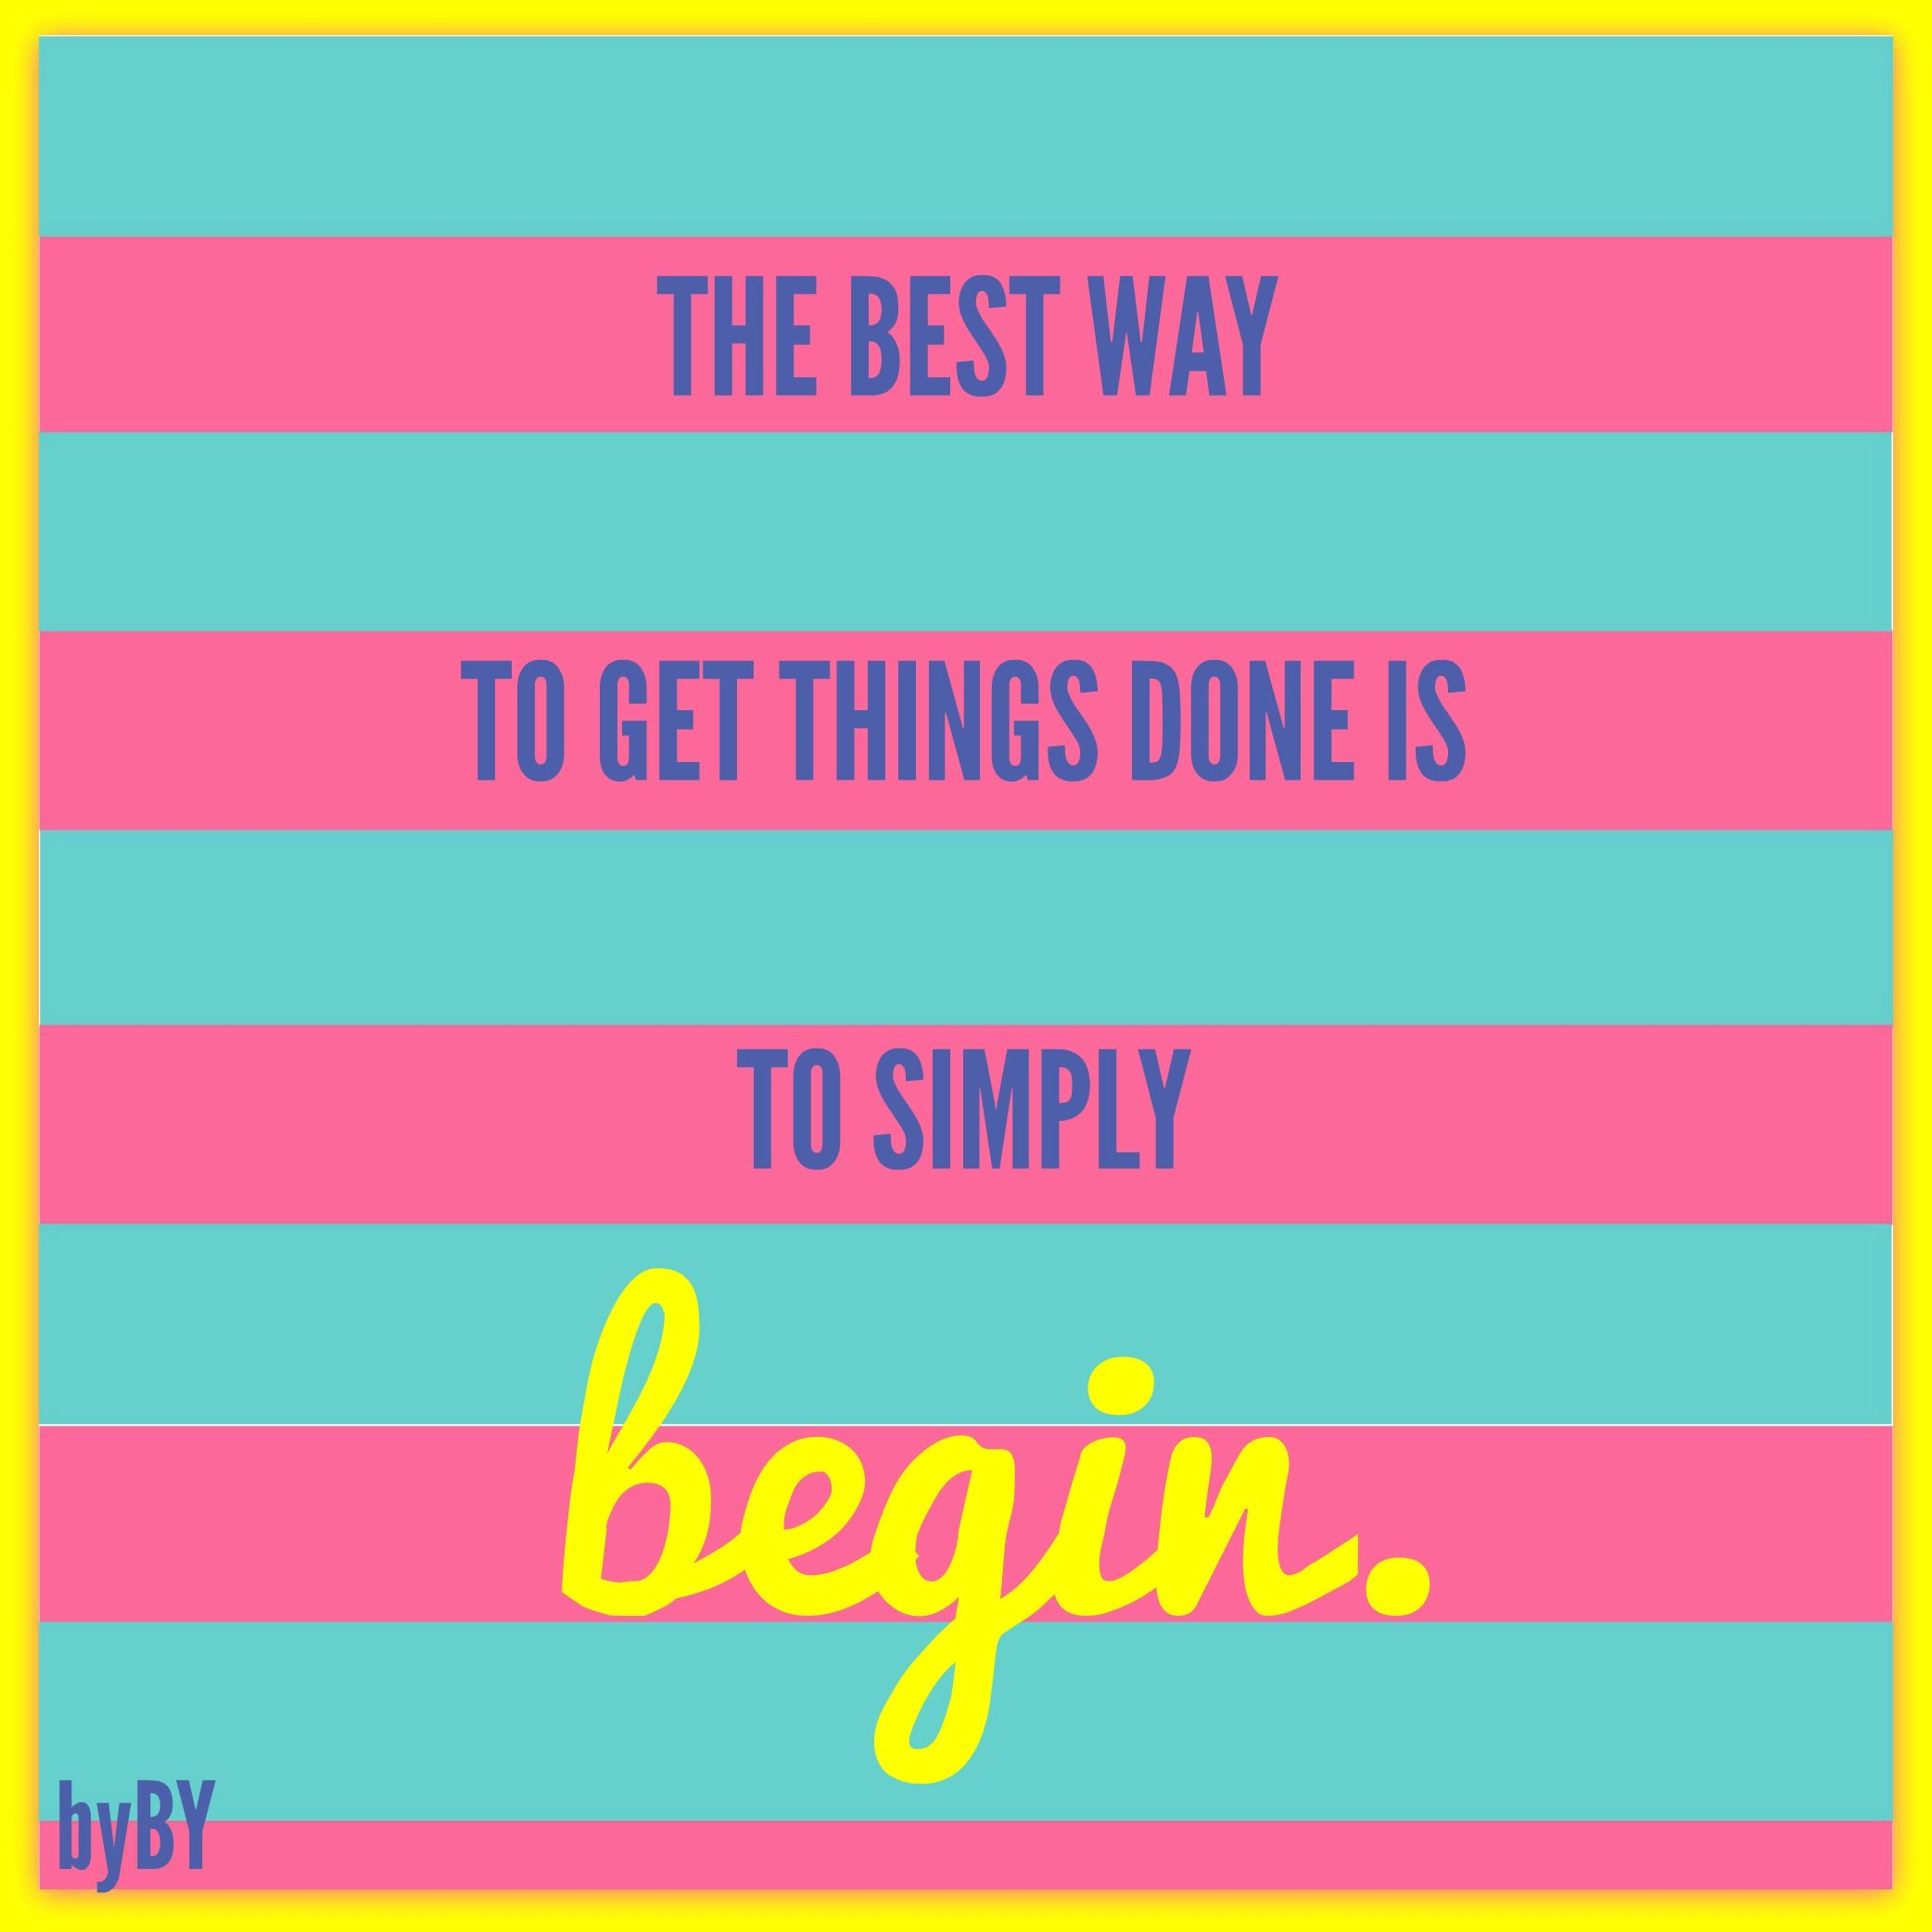 The best way to get things done is to simply begin. #MotivationMonday…